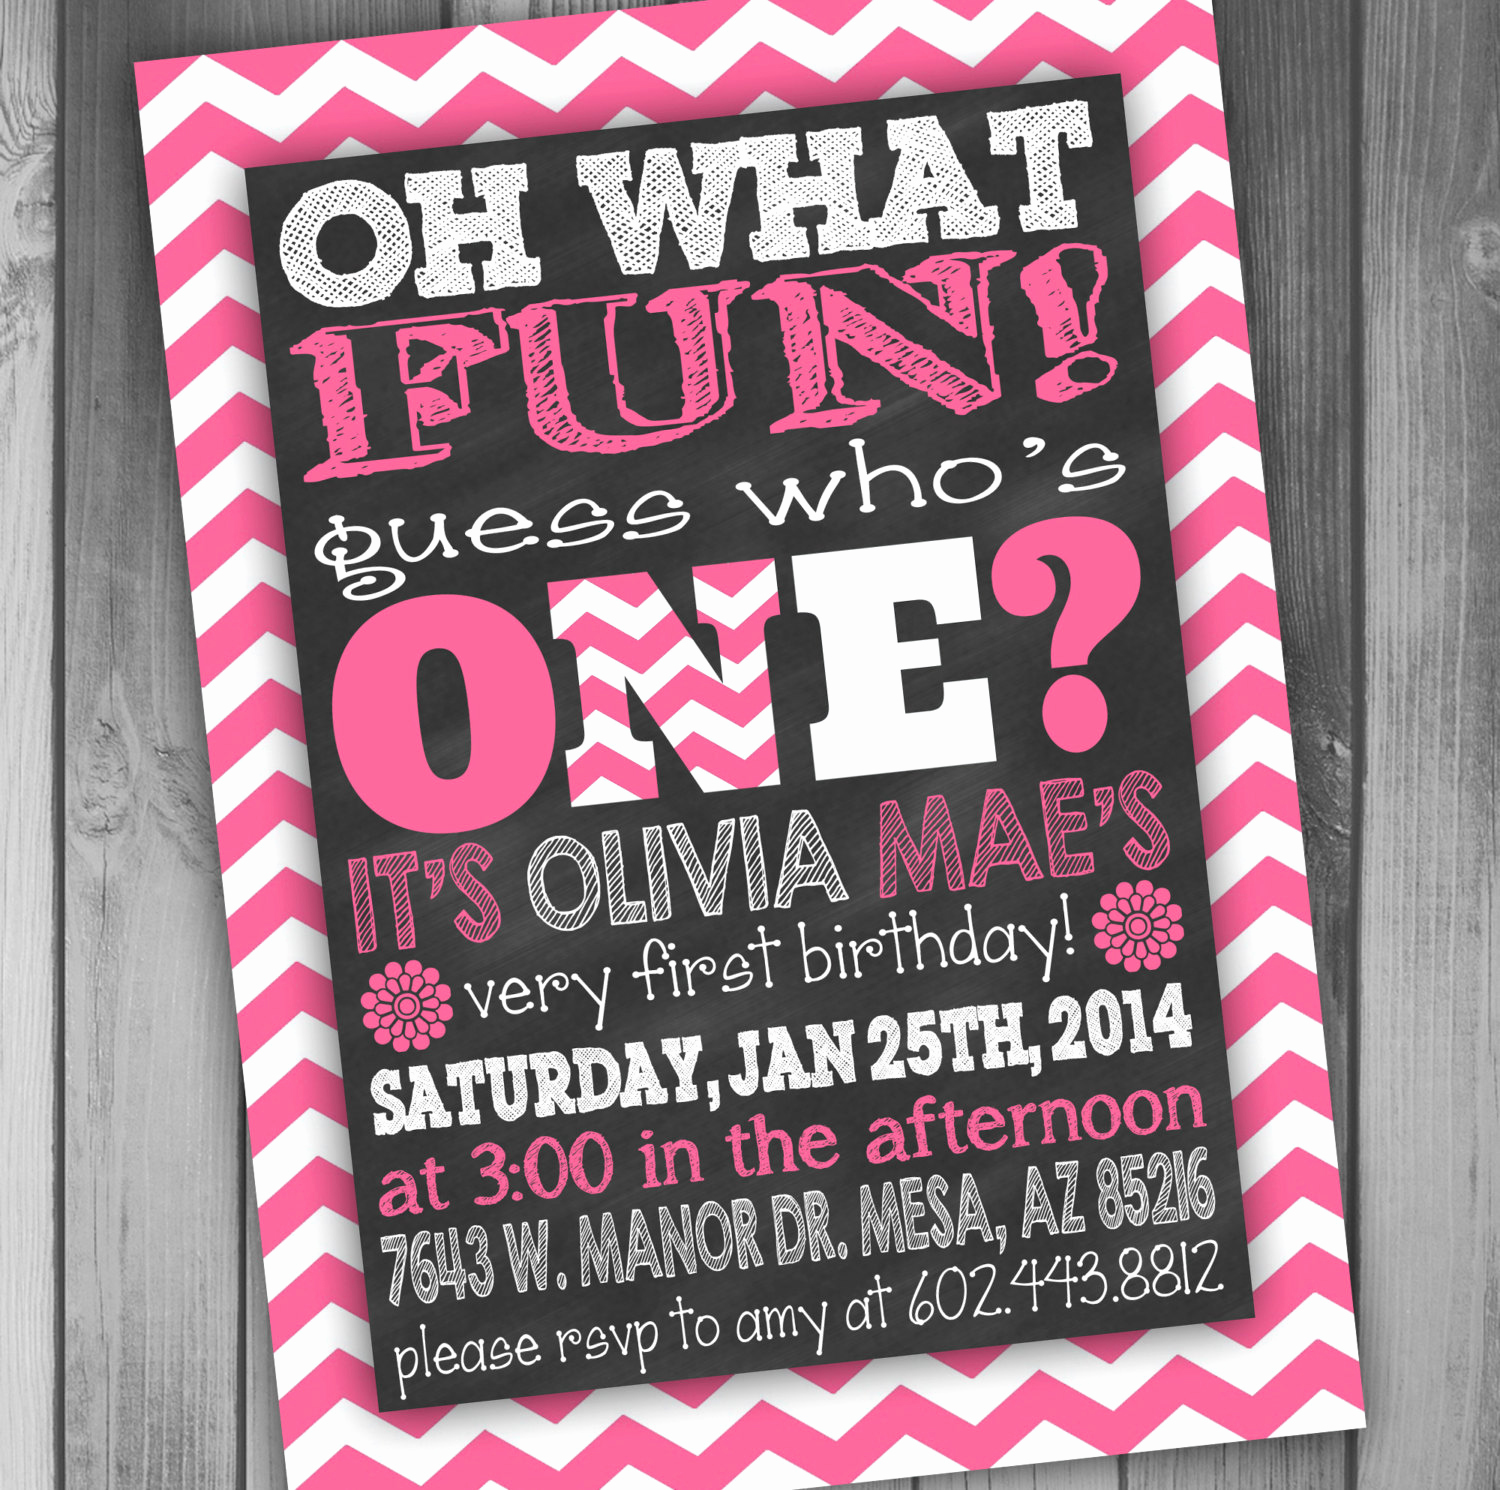 1st Birthday Invitation Wording Beautiful First Birthday Chalkboard Girl Birthday Invitation Chalkboard